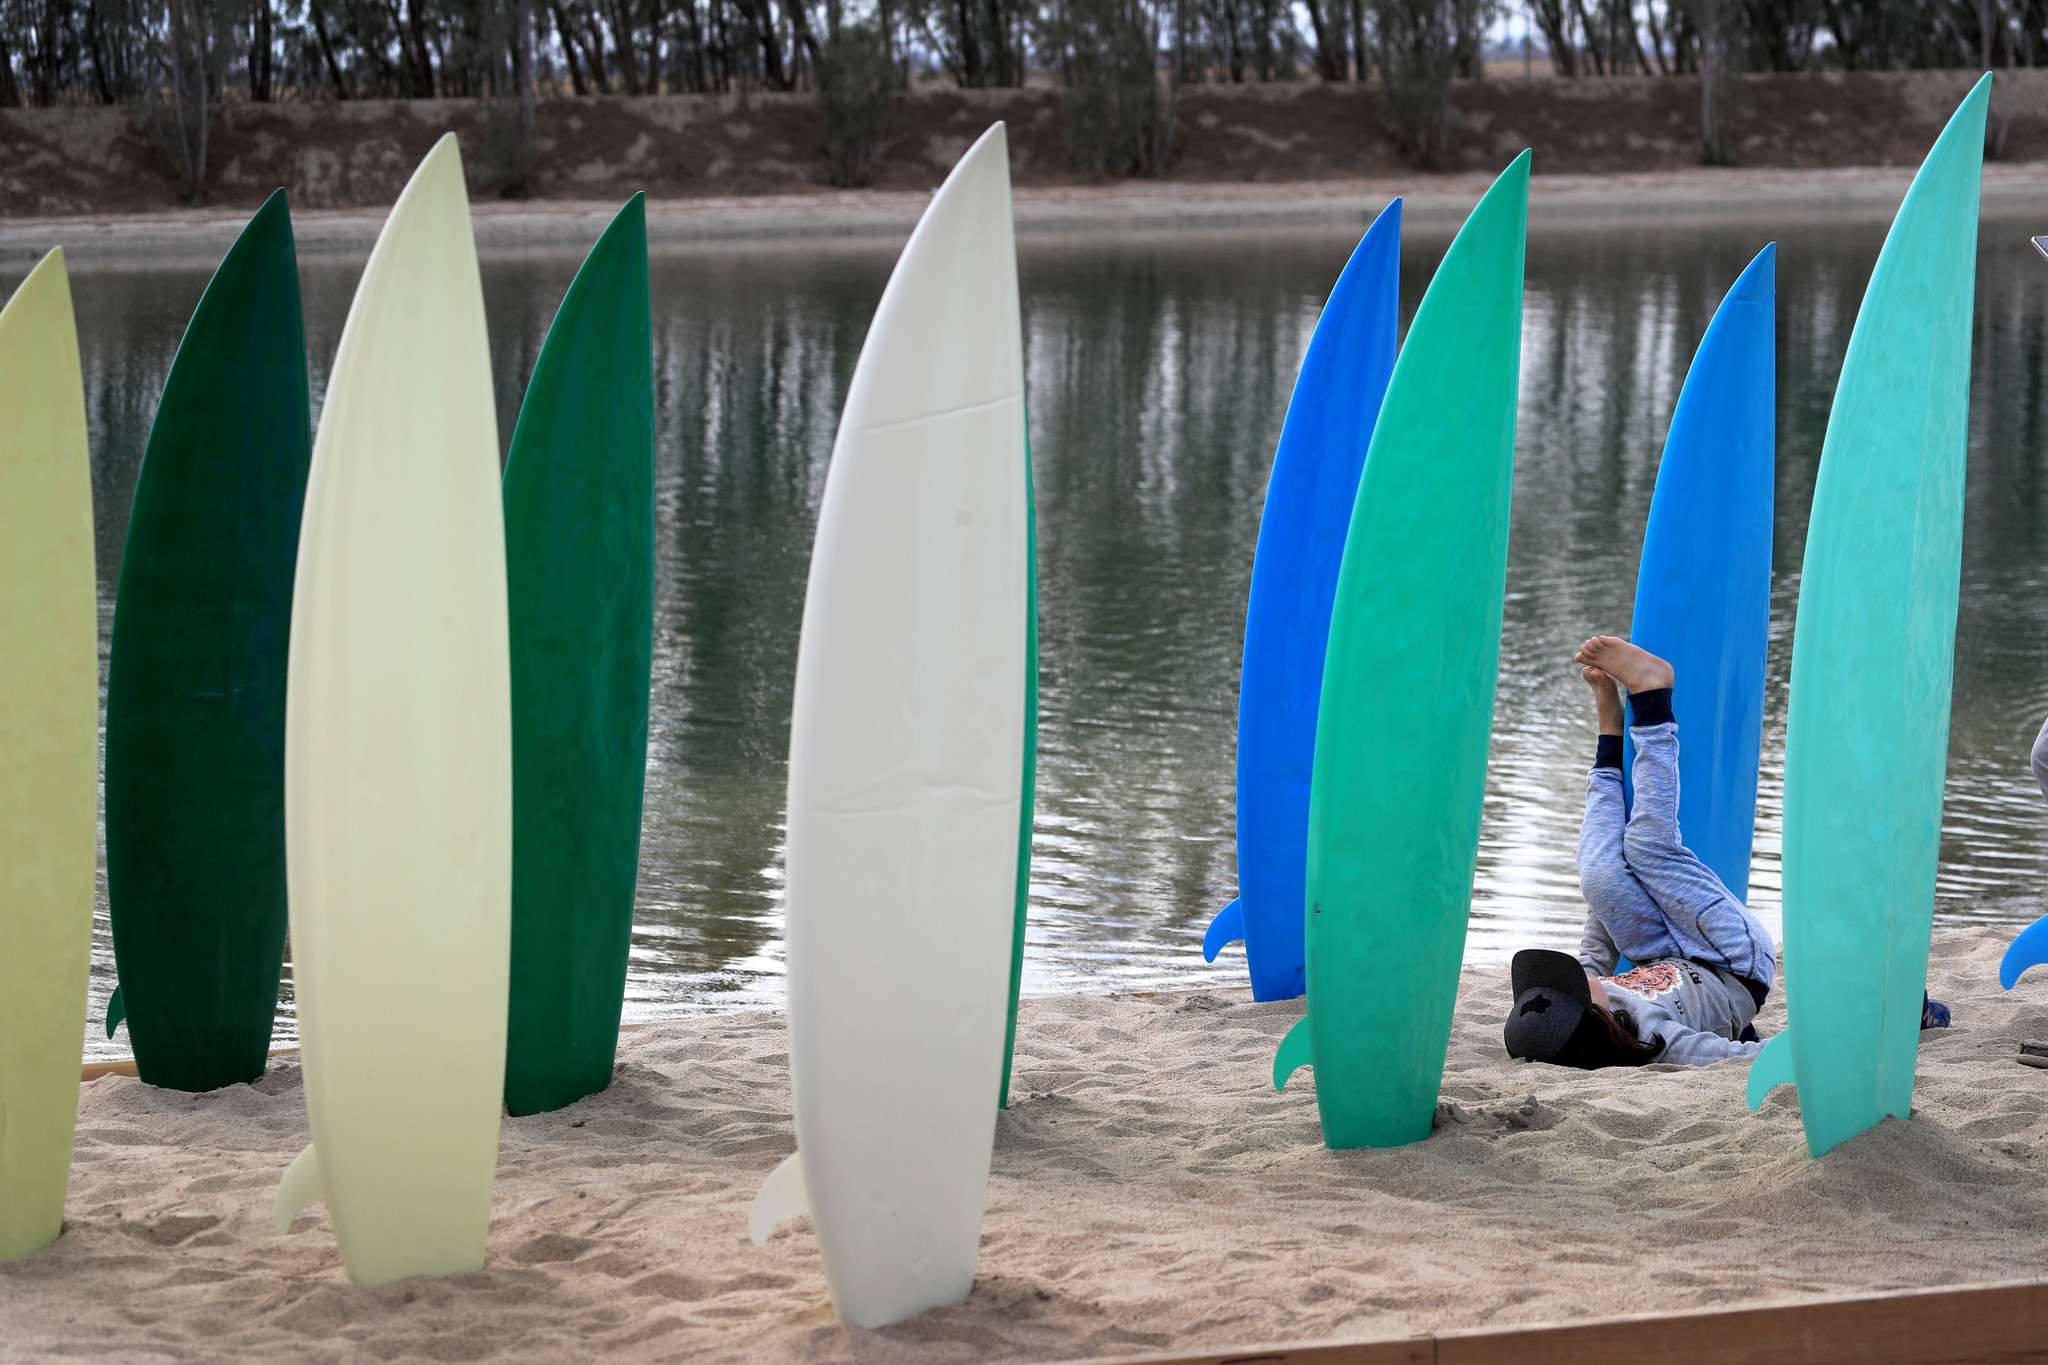 LEMOORE, CALIF. -- SATURDAY, MAY 5, 2018: A child plays in the middle of a surfboard art installatio